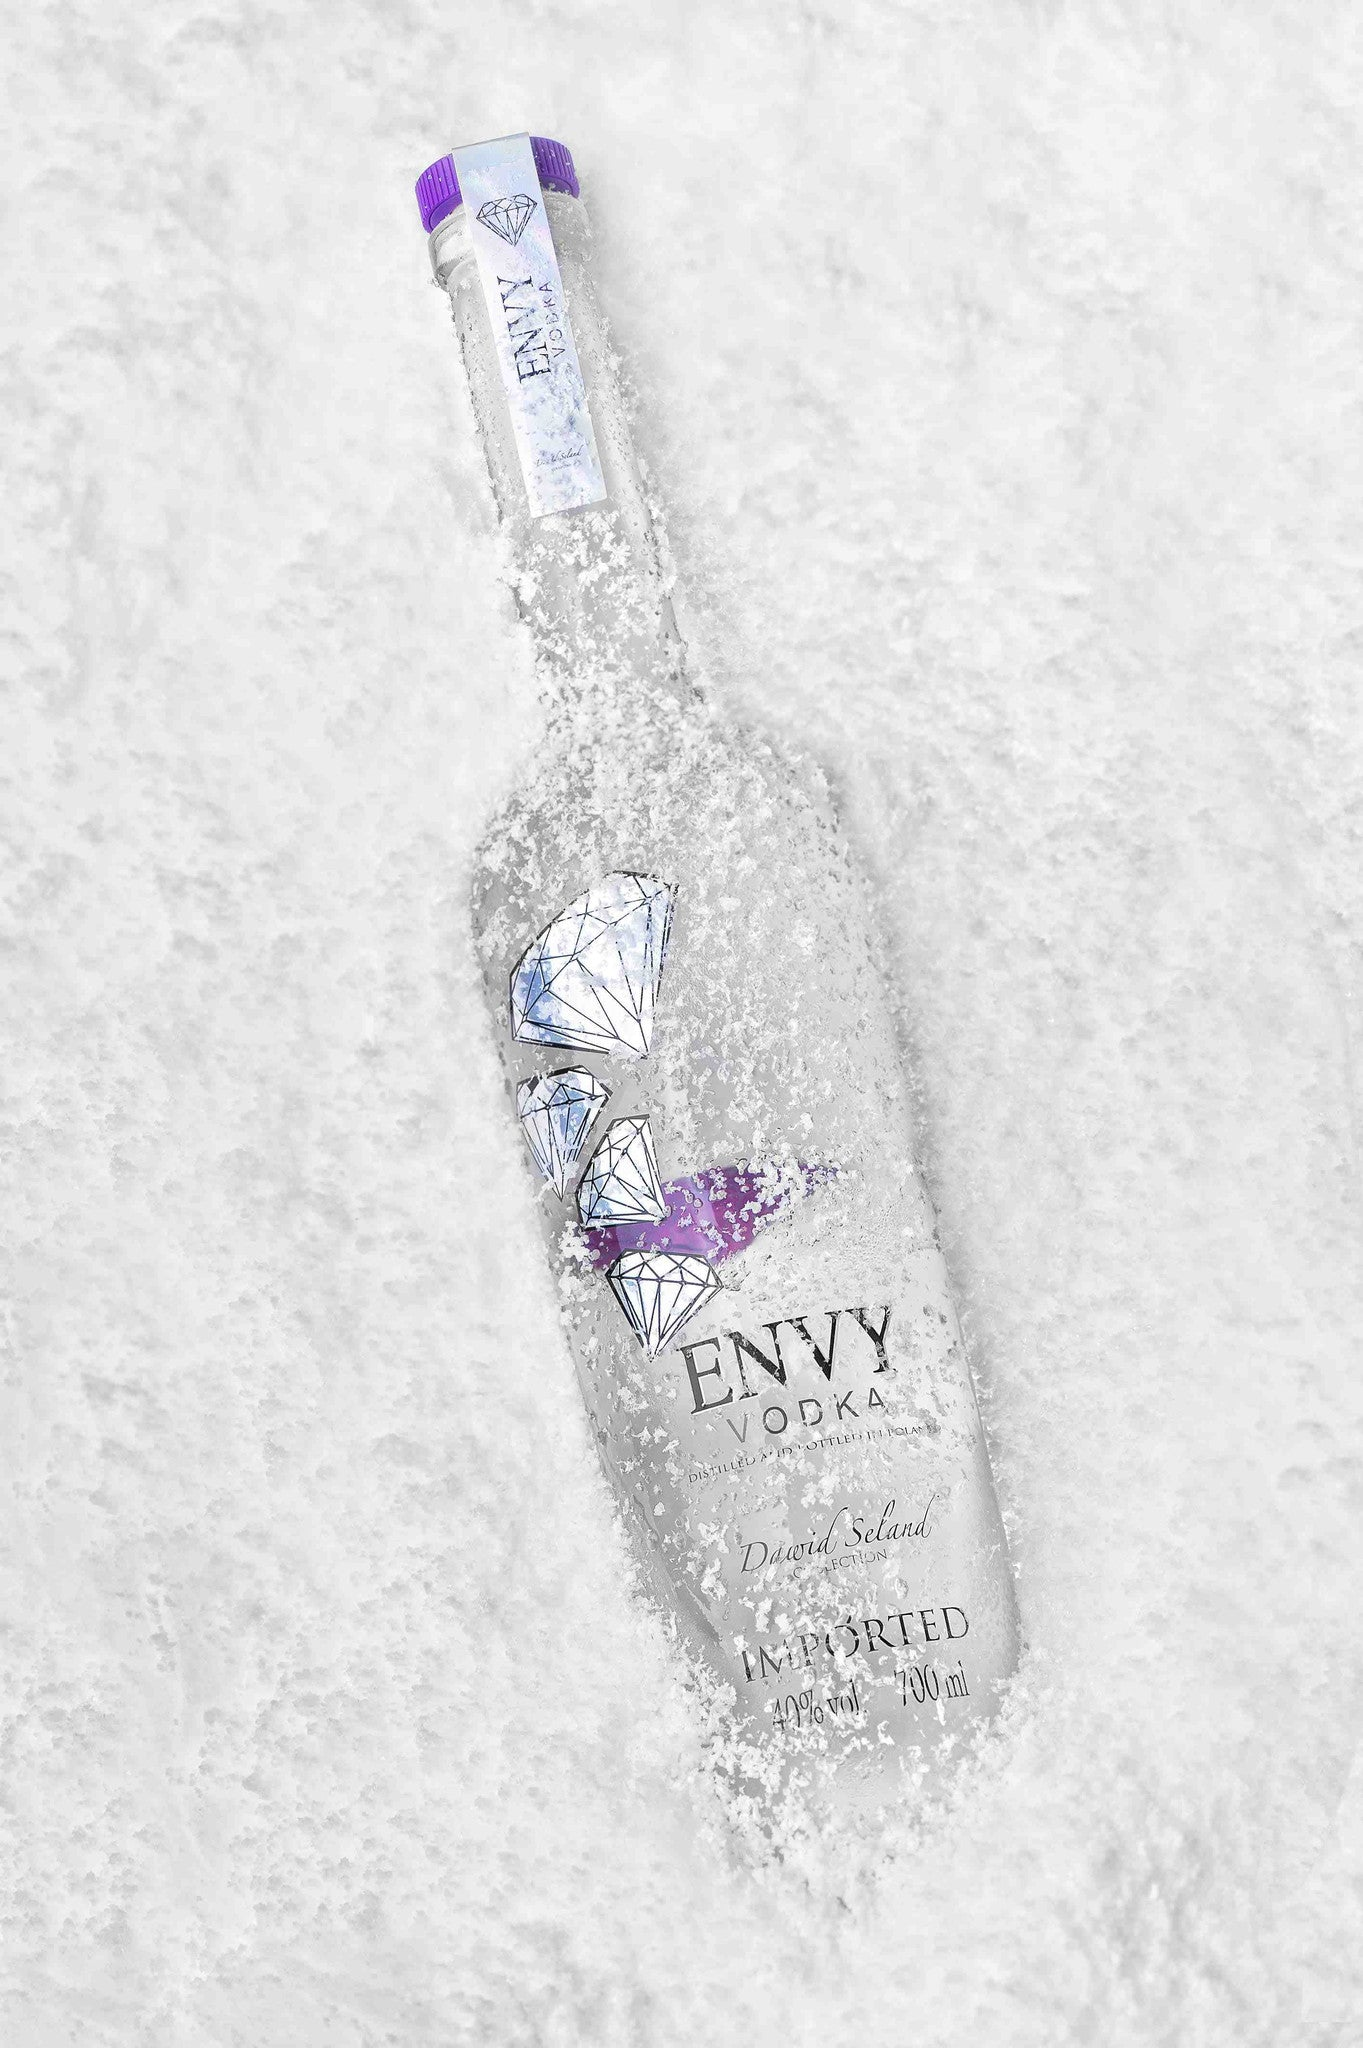 2 x Envy Vodka 40% 70 cl +  2 x Moët Chandon Nectar 75cl